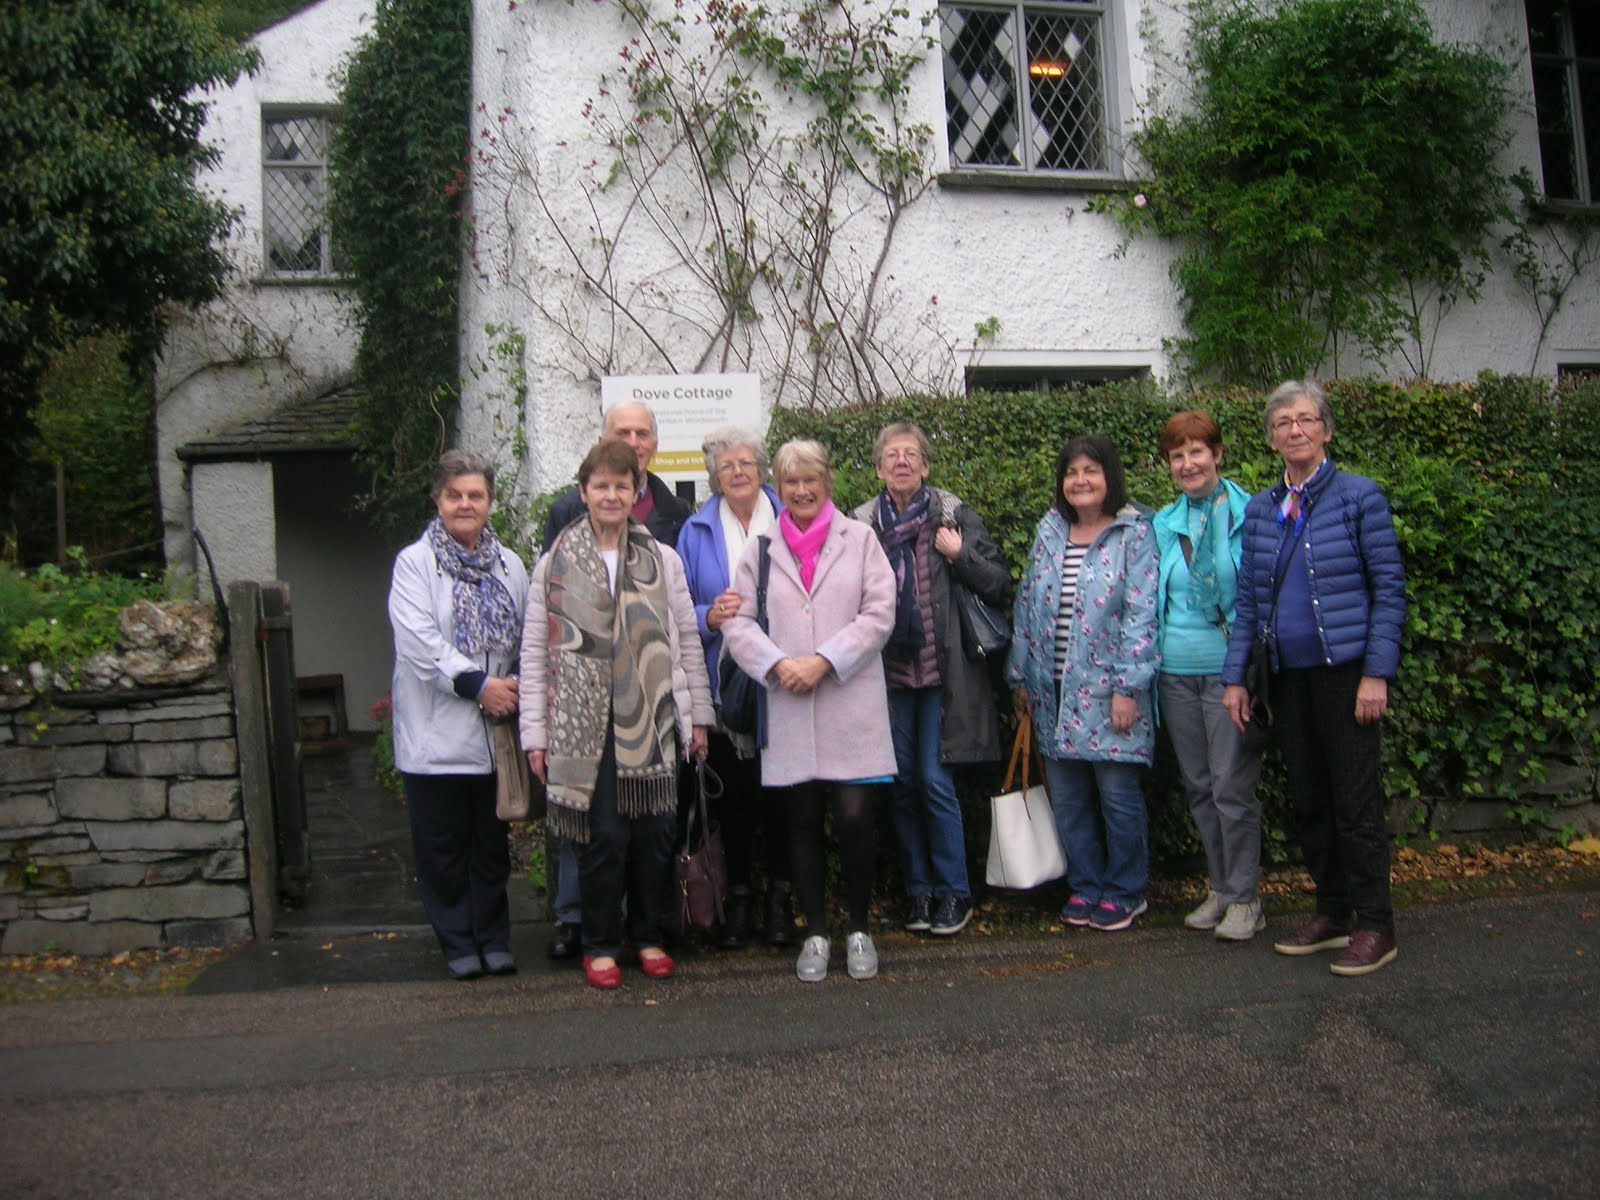 Group at Dove Cottage